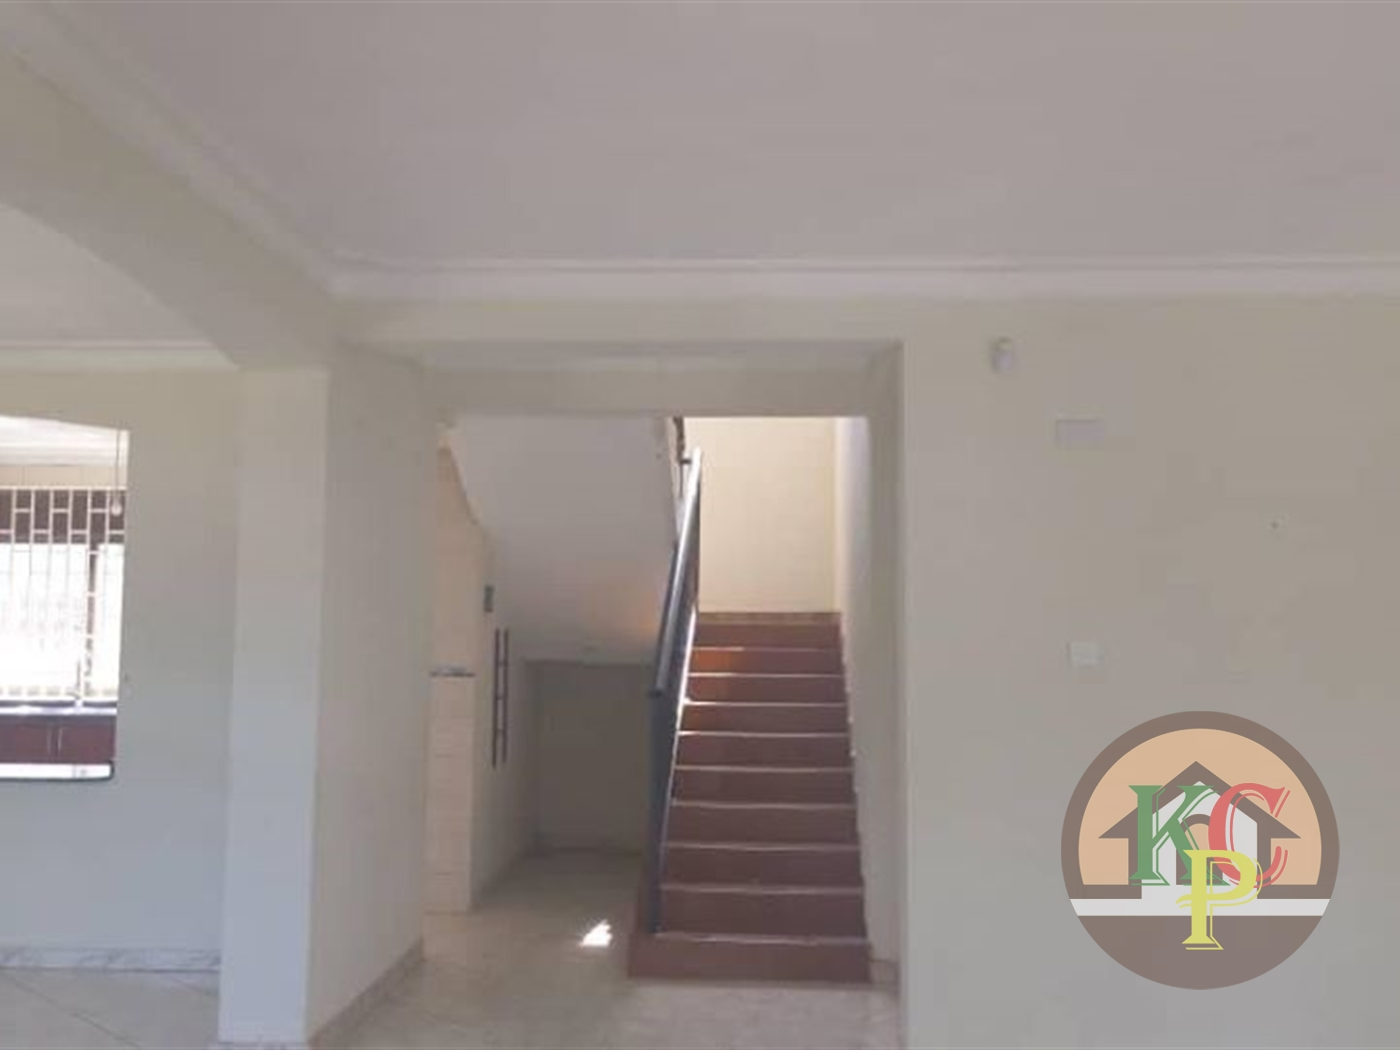 Mansion for rent in Munyonyo Kampala